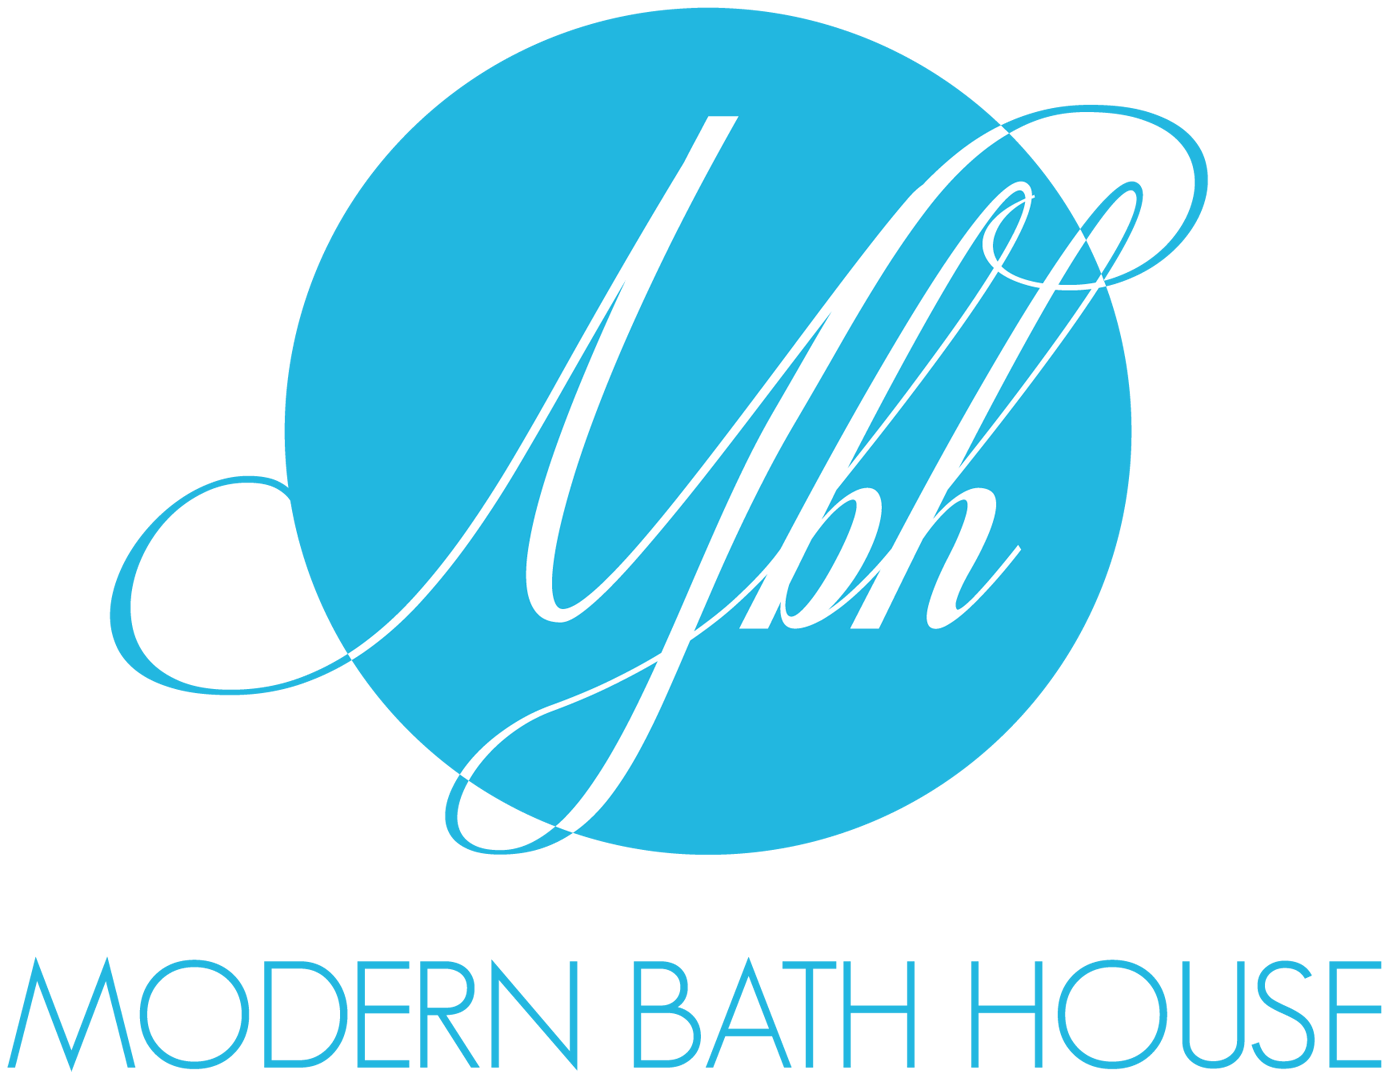 Modern Bath House is an online retailer that provides excellent customer service with knowledgeable support, and competitive pricing.   Please visit us at: http://www.modernbathhouse.com